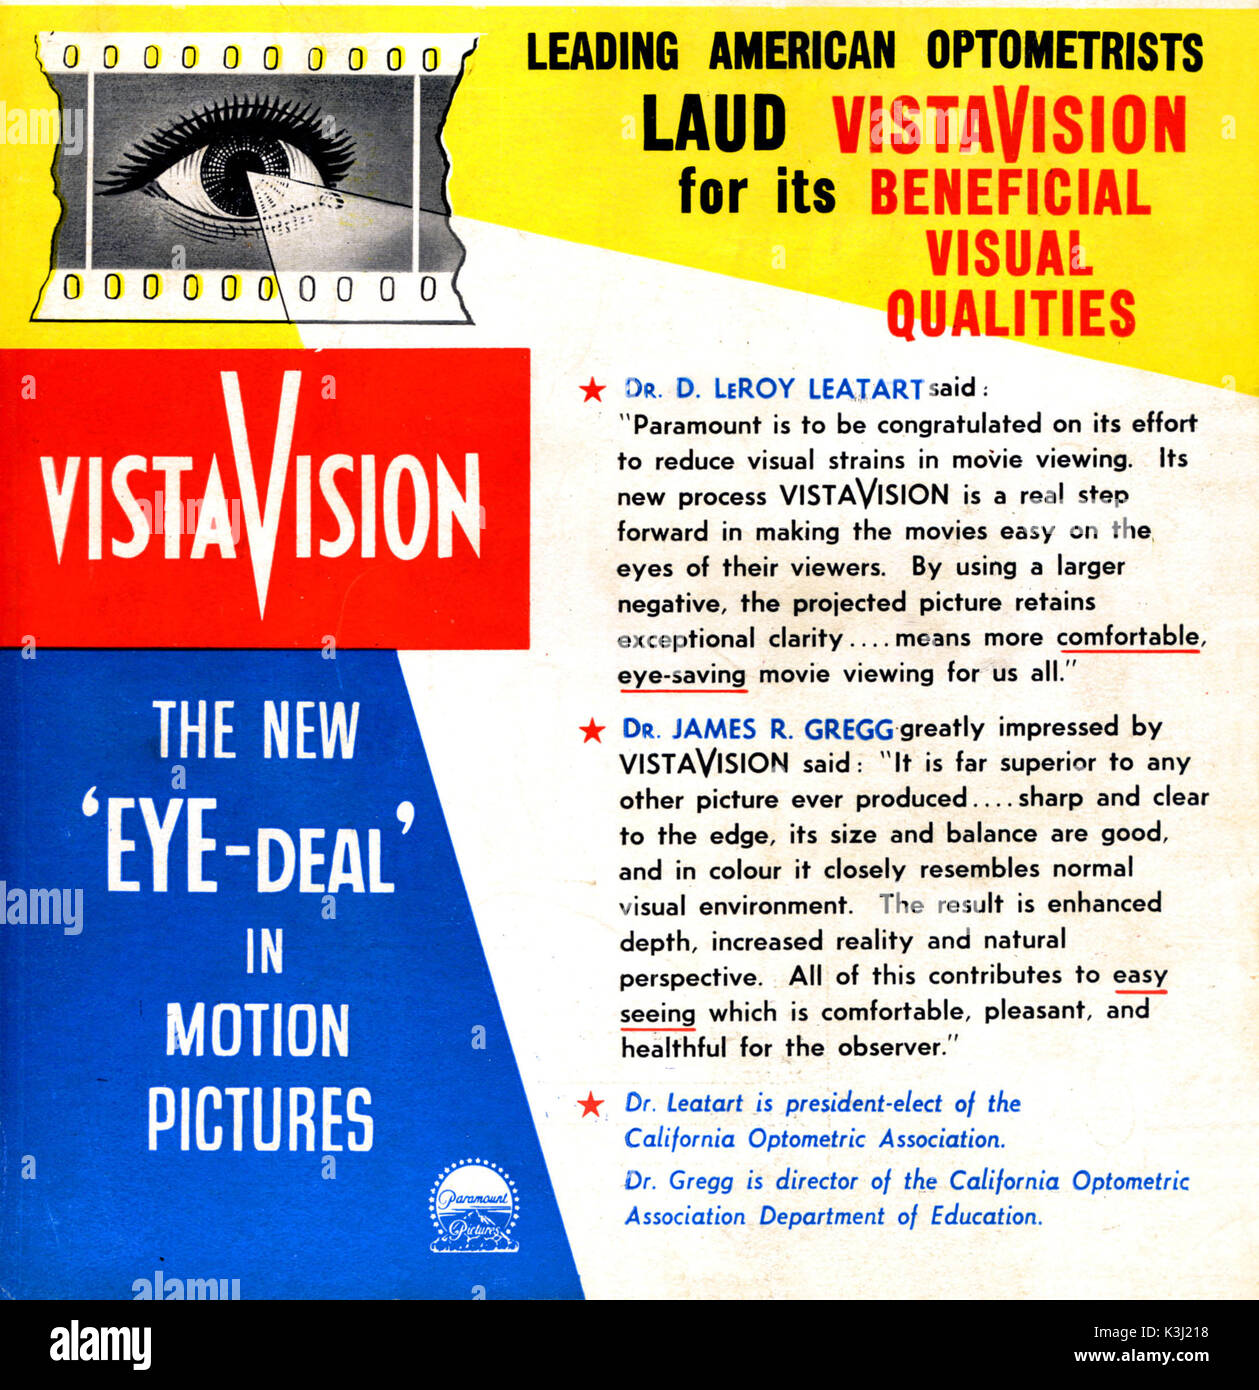 EXTOLLING THE BENEFITS OF THE NEW VISTAVISION SCREEN FORMAT - 1954 - Stock Image